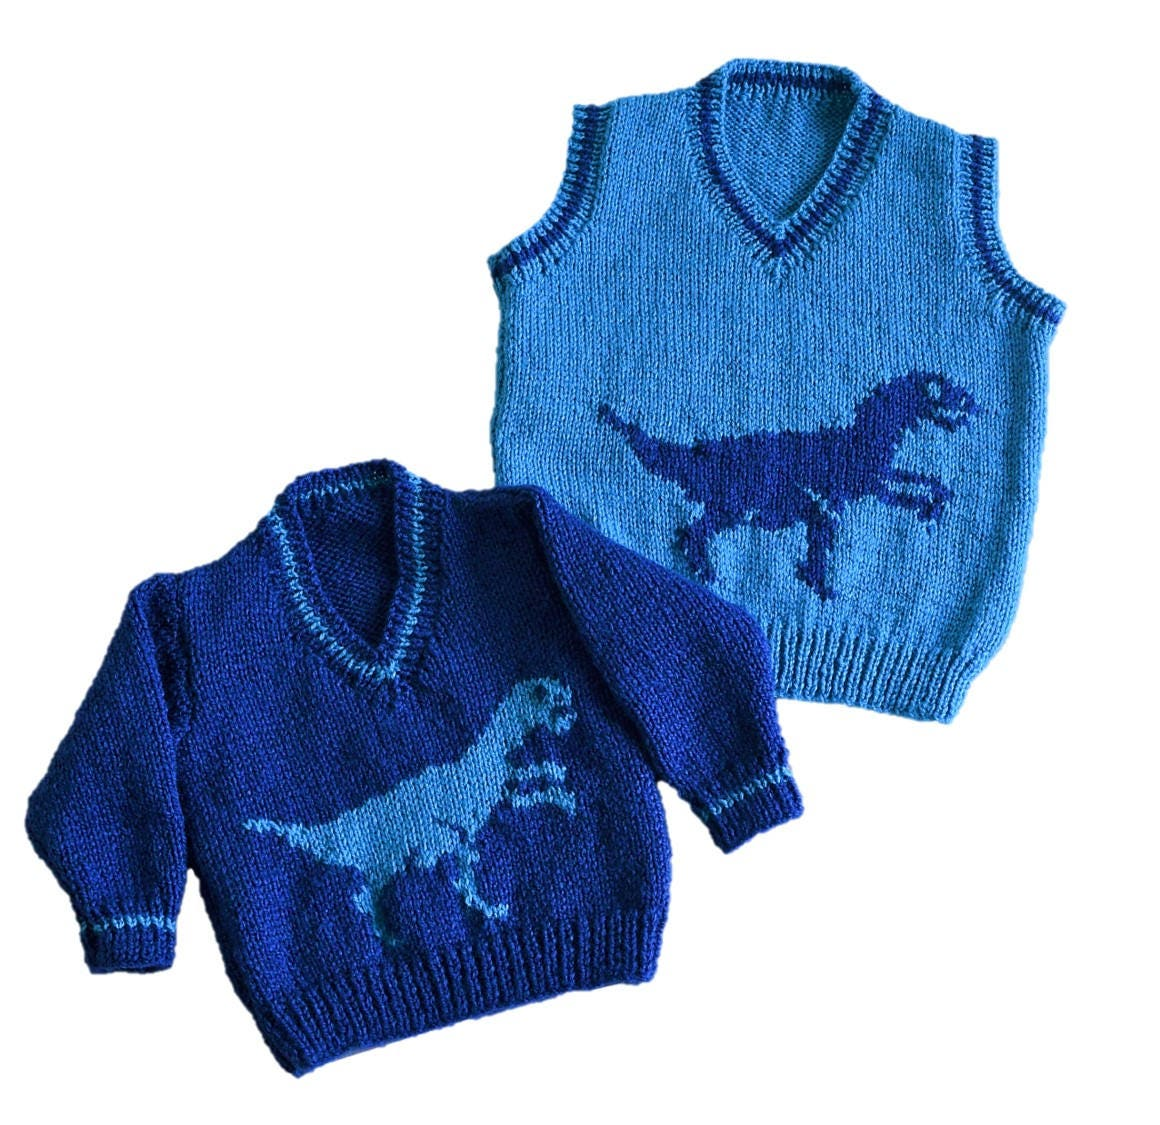 Knitting pattern for boys and girls dinosaur v neck tops pdf knitting pattern for boys and girls dinosaur v neck tops pdf instant download dinosaur sweater childrens double knitting jumper pattern bankloansurffo Image collections